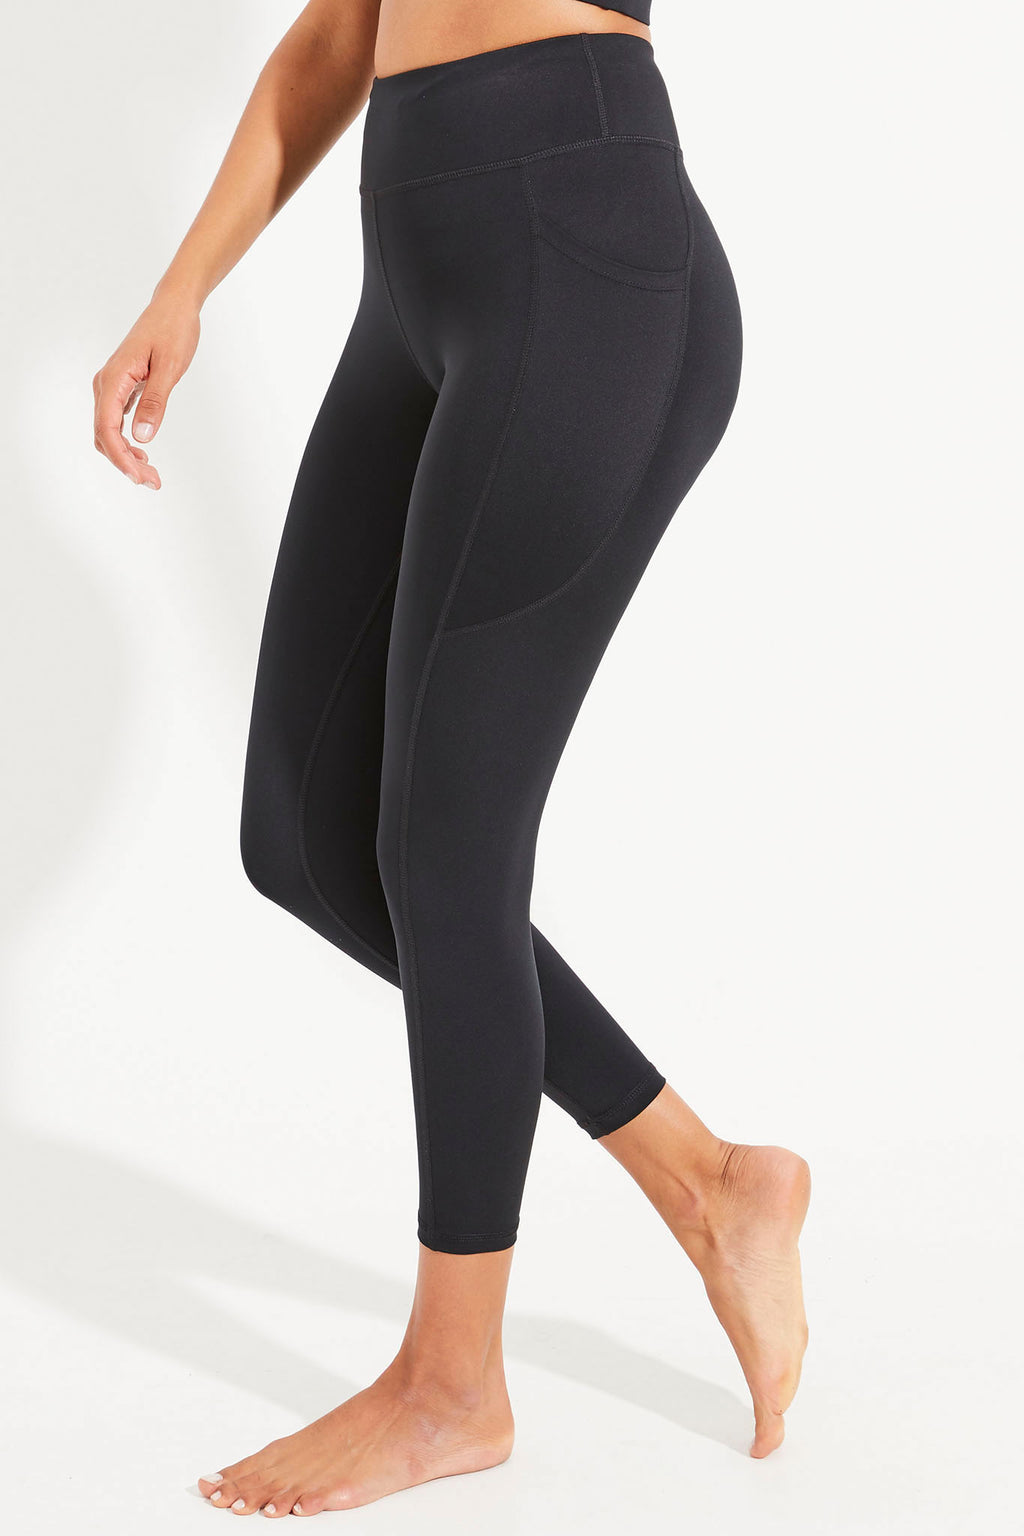 Dharma Bums Bondi Pocket Legging Sweat Society Canada USA